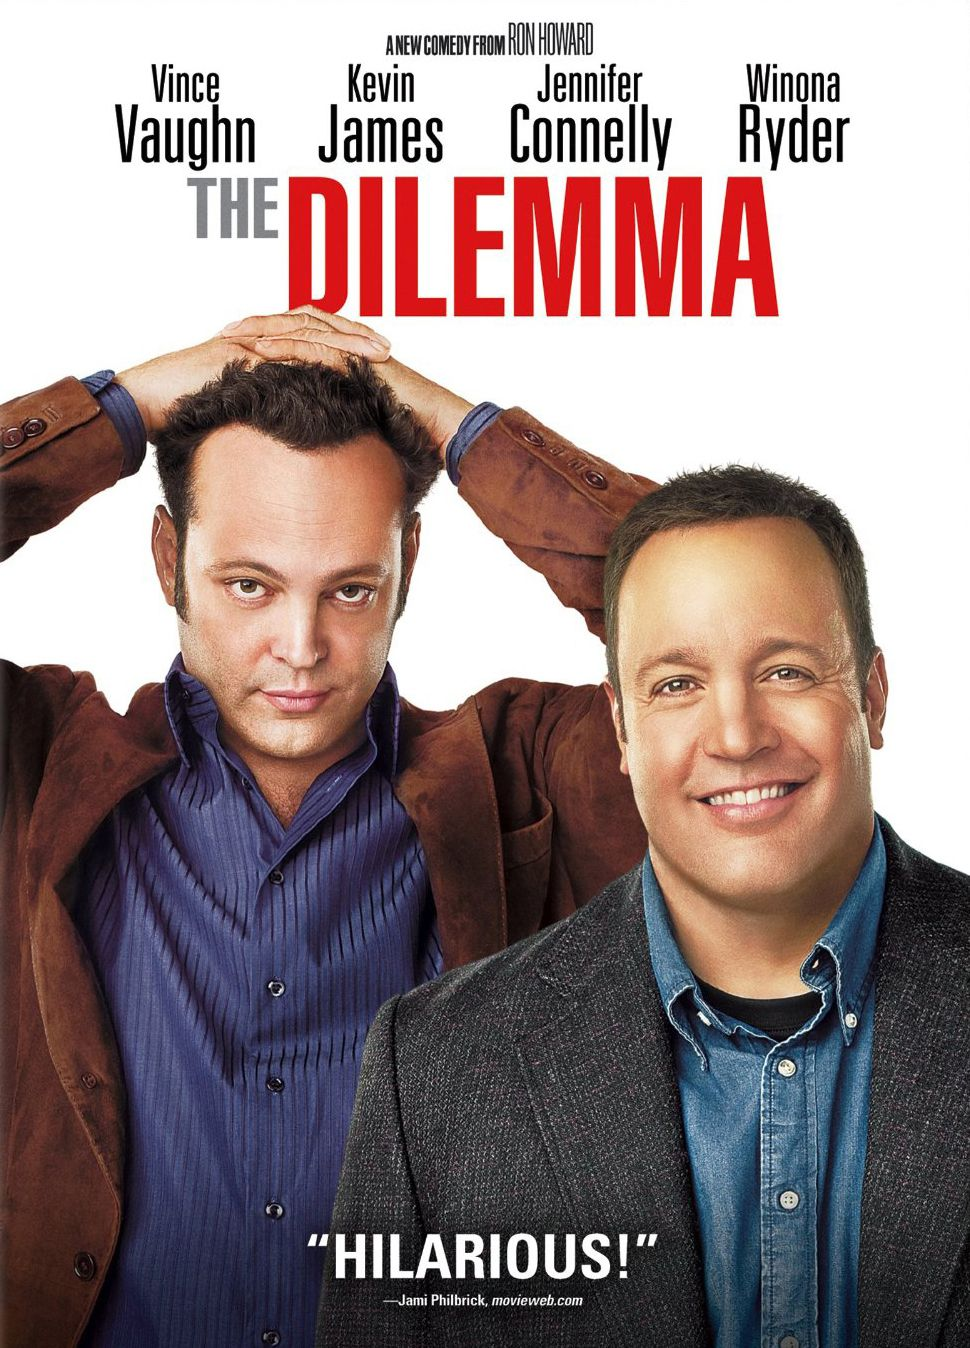 Publicity still for The Dilemma